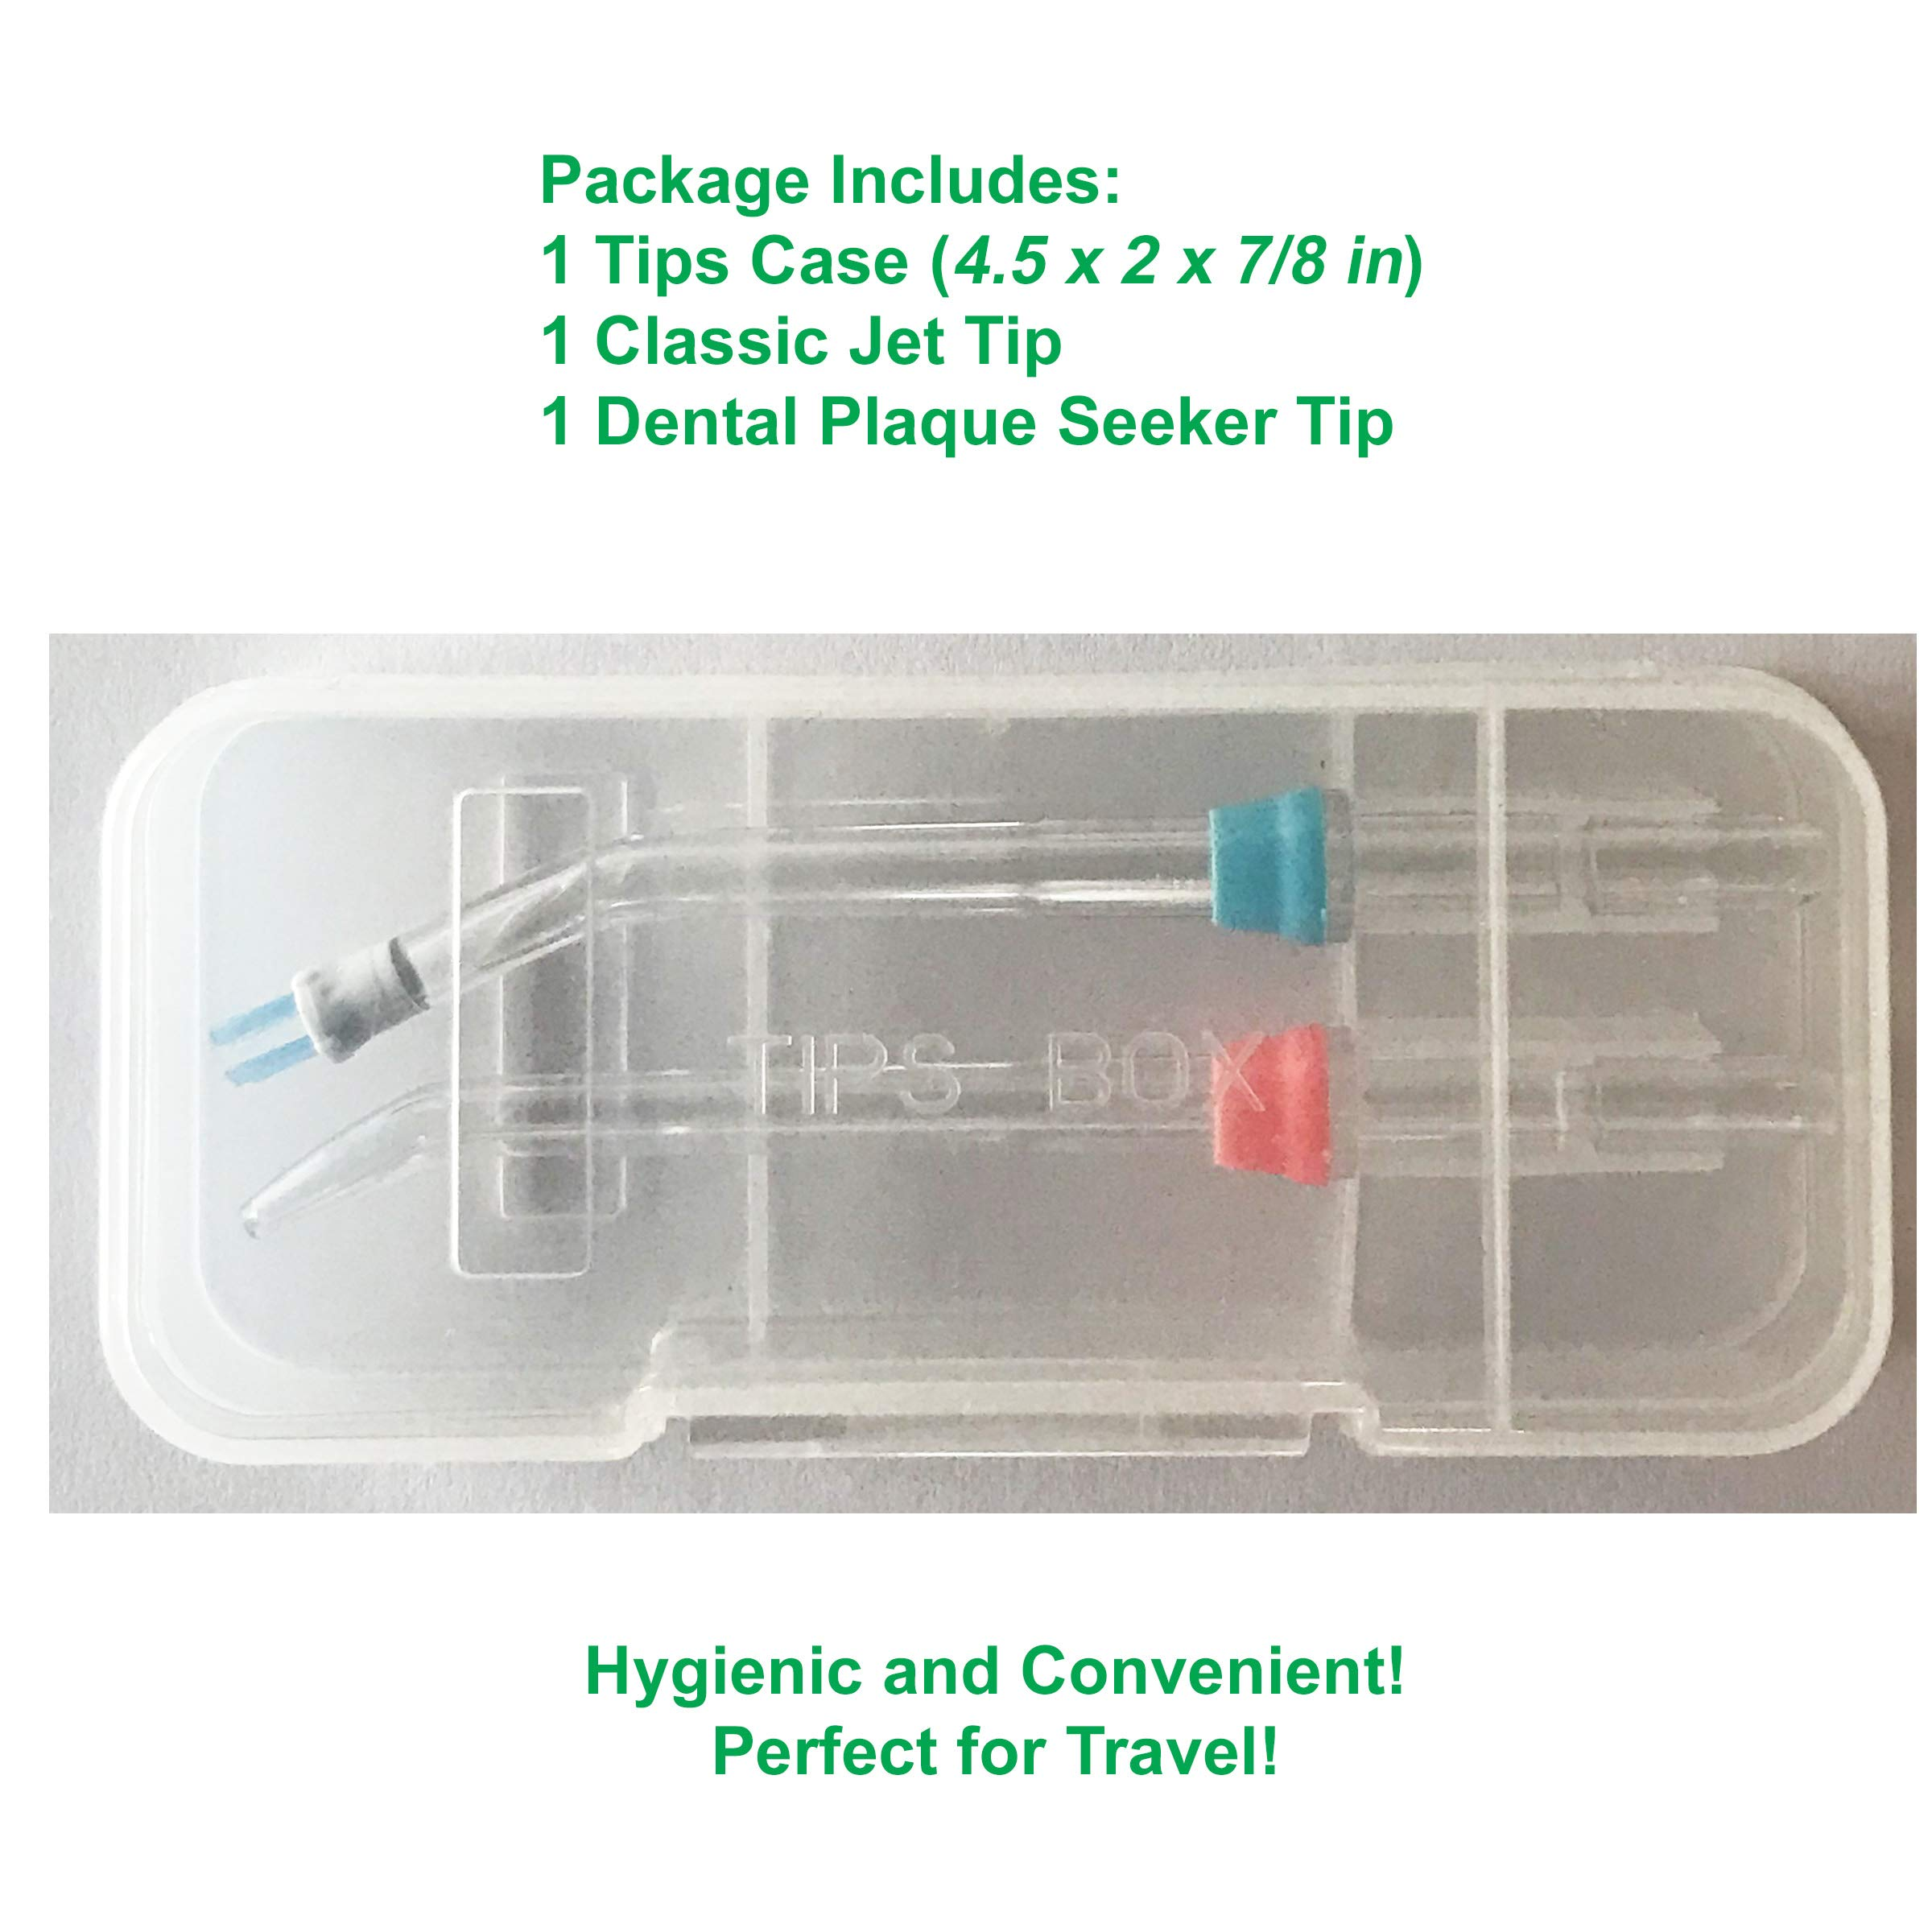 Hygienic Storage Case For Waterpik Replacement Tips, Included 1 Classic Jet Tip & 1 Dental Plaque Seeker Tip, Convenient For Travel by iHealthia (Image #2)